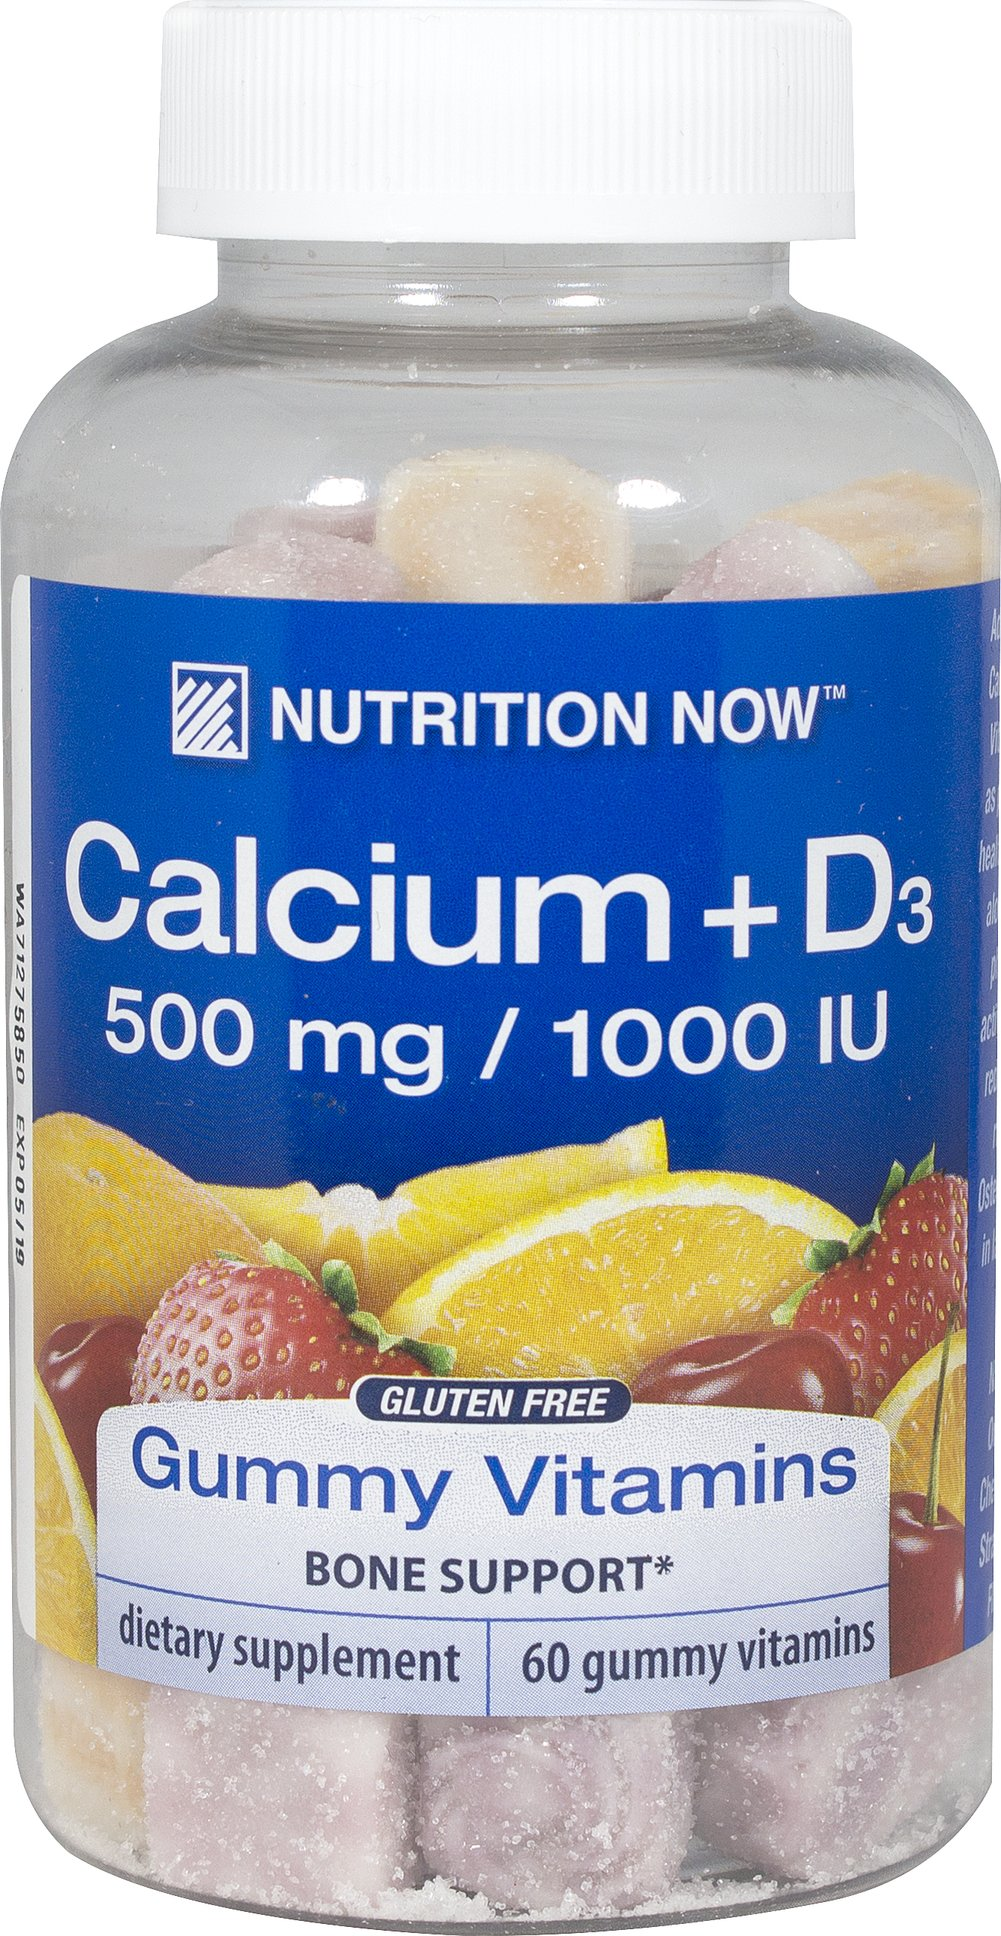 Calcium Gummy Vitamins <b><p>From the Manufacturer's Label:</b></p> <p>Nutrition Now Calcium Gummy Vitamins for adults with Vitamin D contains as much calcium as two 6oz glasses of milk in each serving.  Naturally Flavored orange, cherry and strawberry gummy vitamins.</p> 60 Gummies  $7.99